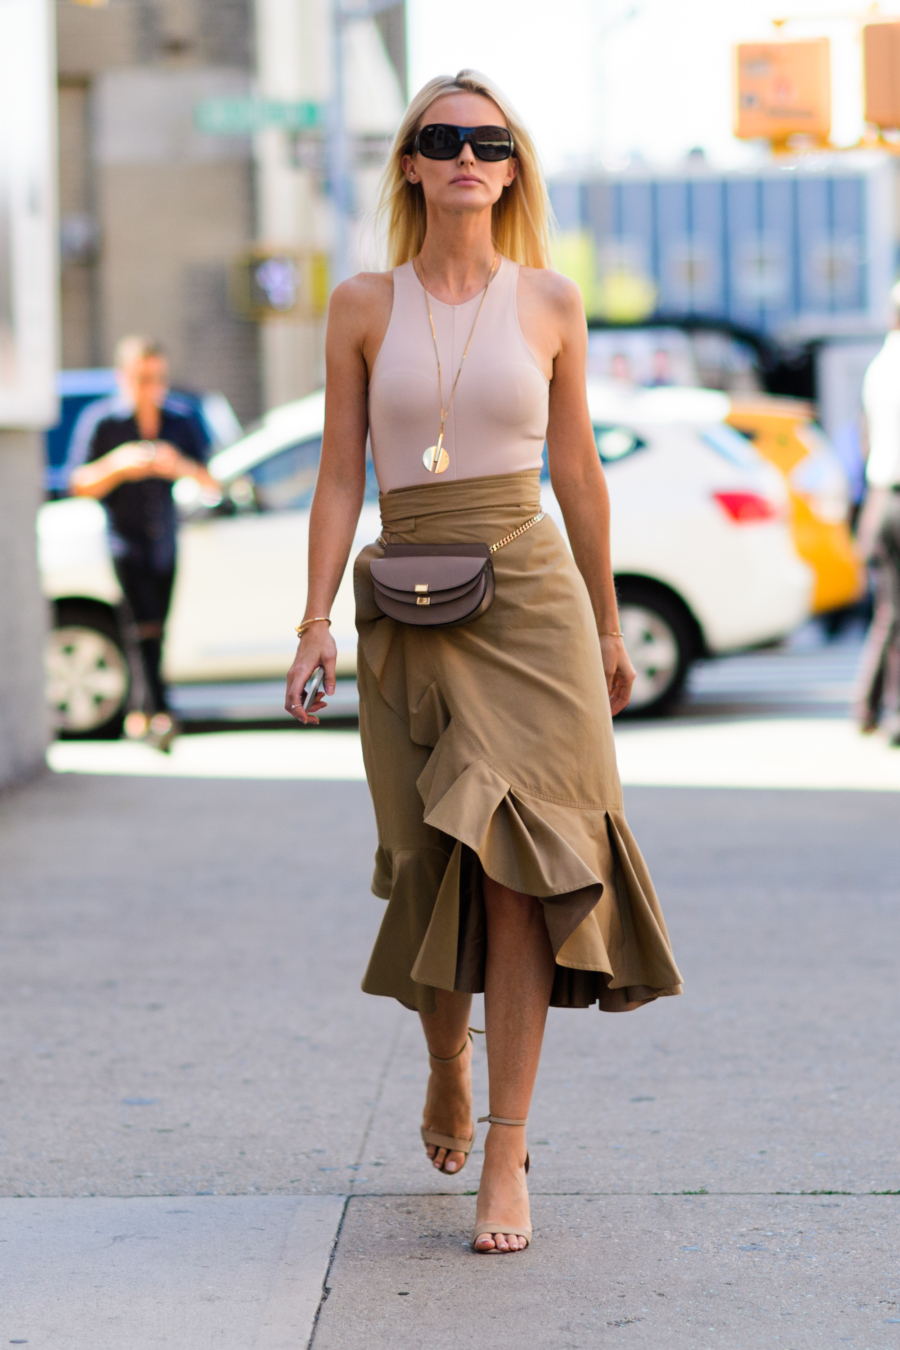 Ruffle Wrap Skirt - 4 Wrap Skirts To Elevate Your Summer Look // NotJessFashion.com